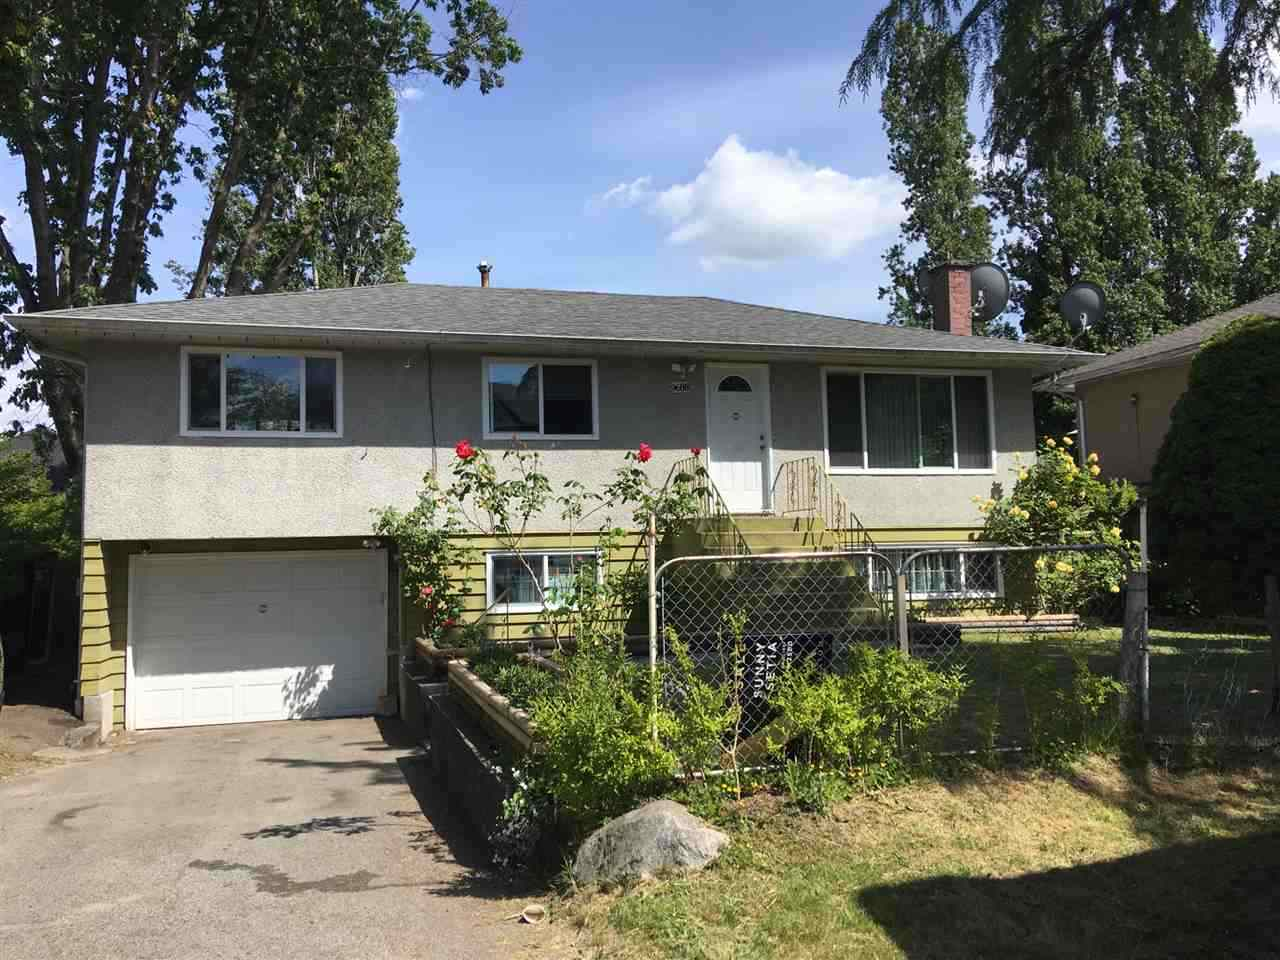 Spectacular investment and place to live! Situated in a nice and quiet area of Cedar Hills, don't miss opportunity to view this home. You can either build your dream home or move in right away to this beautiful 5 bedroom, 2 bathroom partially renovated home. Renovation was completed in 2012. Gorgeous kitchen and countertops with like new appliances. Super bright and huge covered patio with views of the backyard. New double panel windows in 2017.  Very Quiet and Highly sought after neighbourhood with brand new homes sprouting up everywhere. Close to all amenities: walking distance to Elementary and High Schools as well as bus stops and shopping centres. Call today to book your private tour and secure this home for your family!